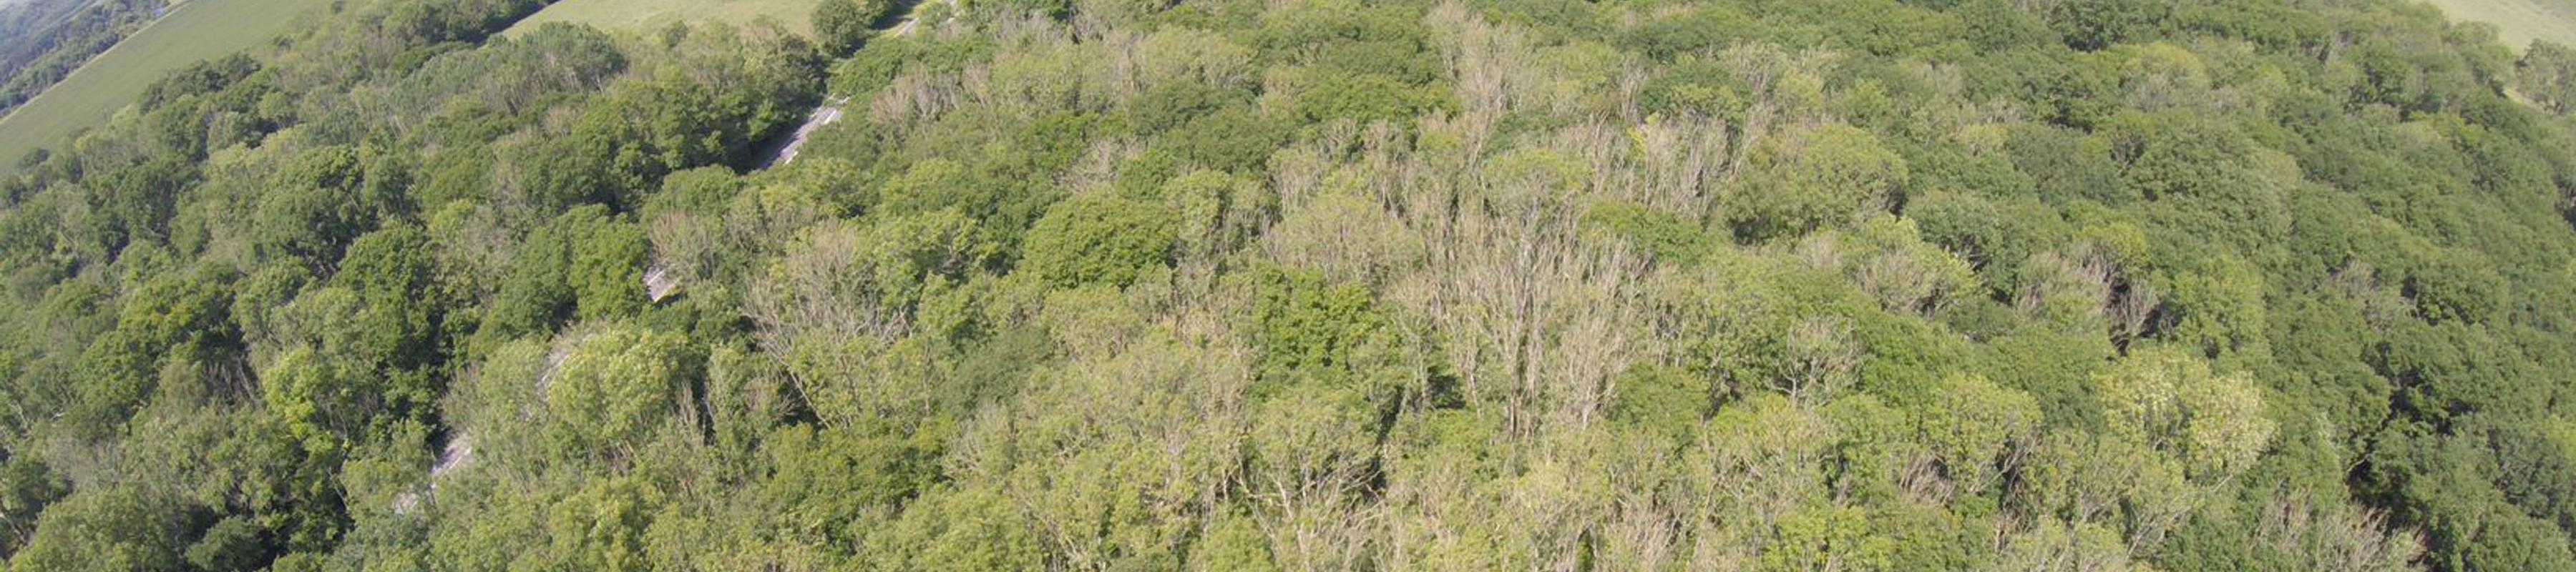 Drone image of Kent woodland with trees infected by ash